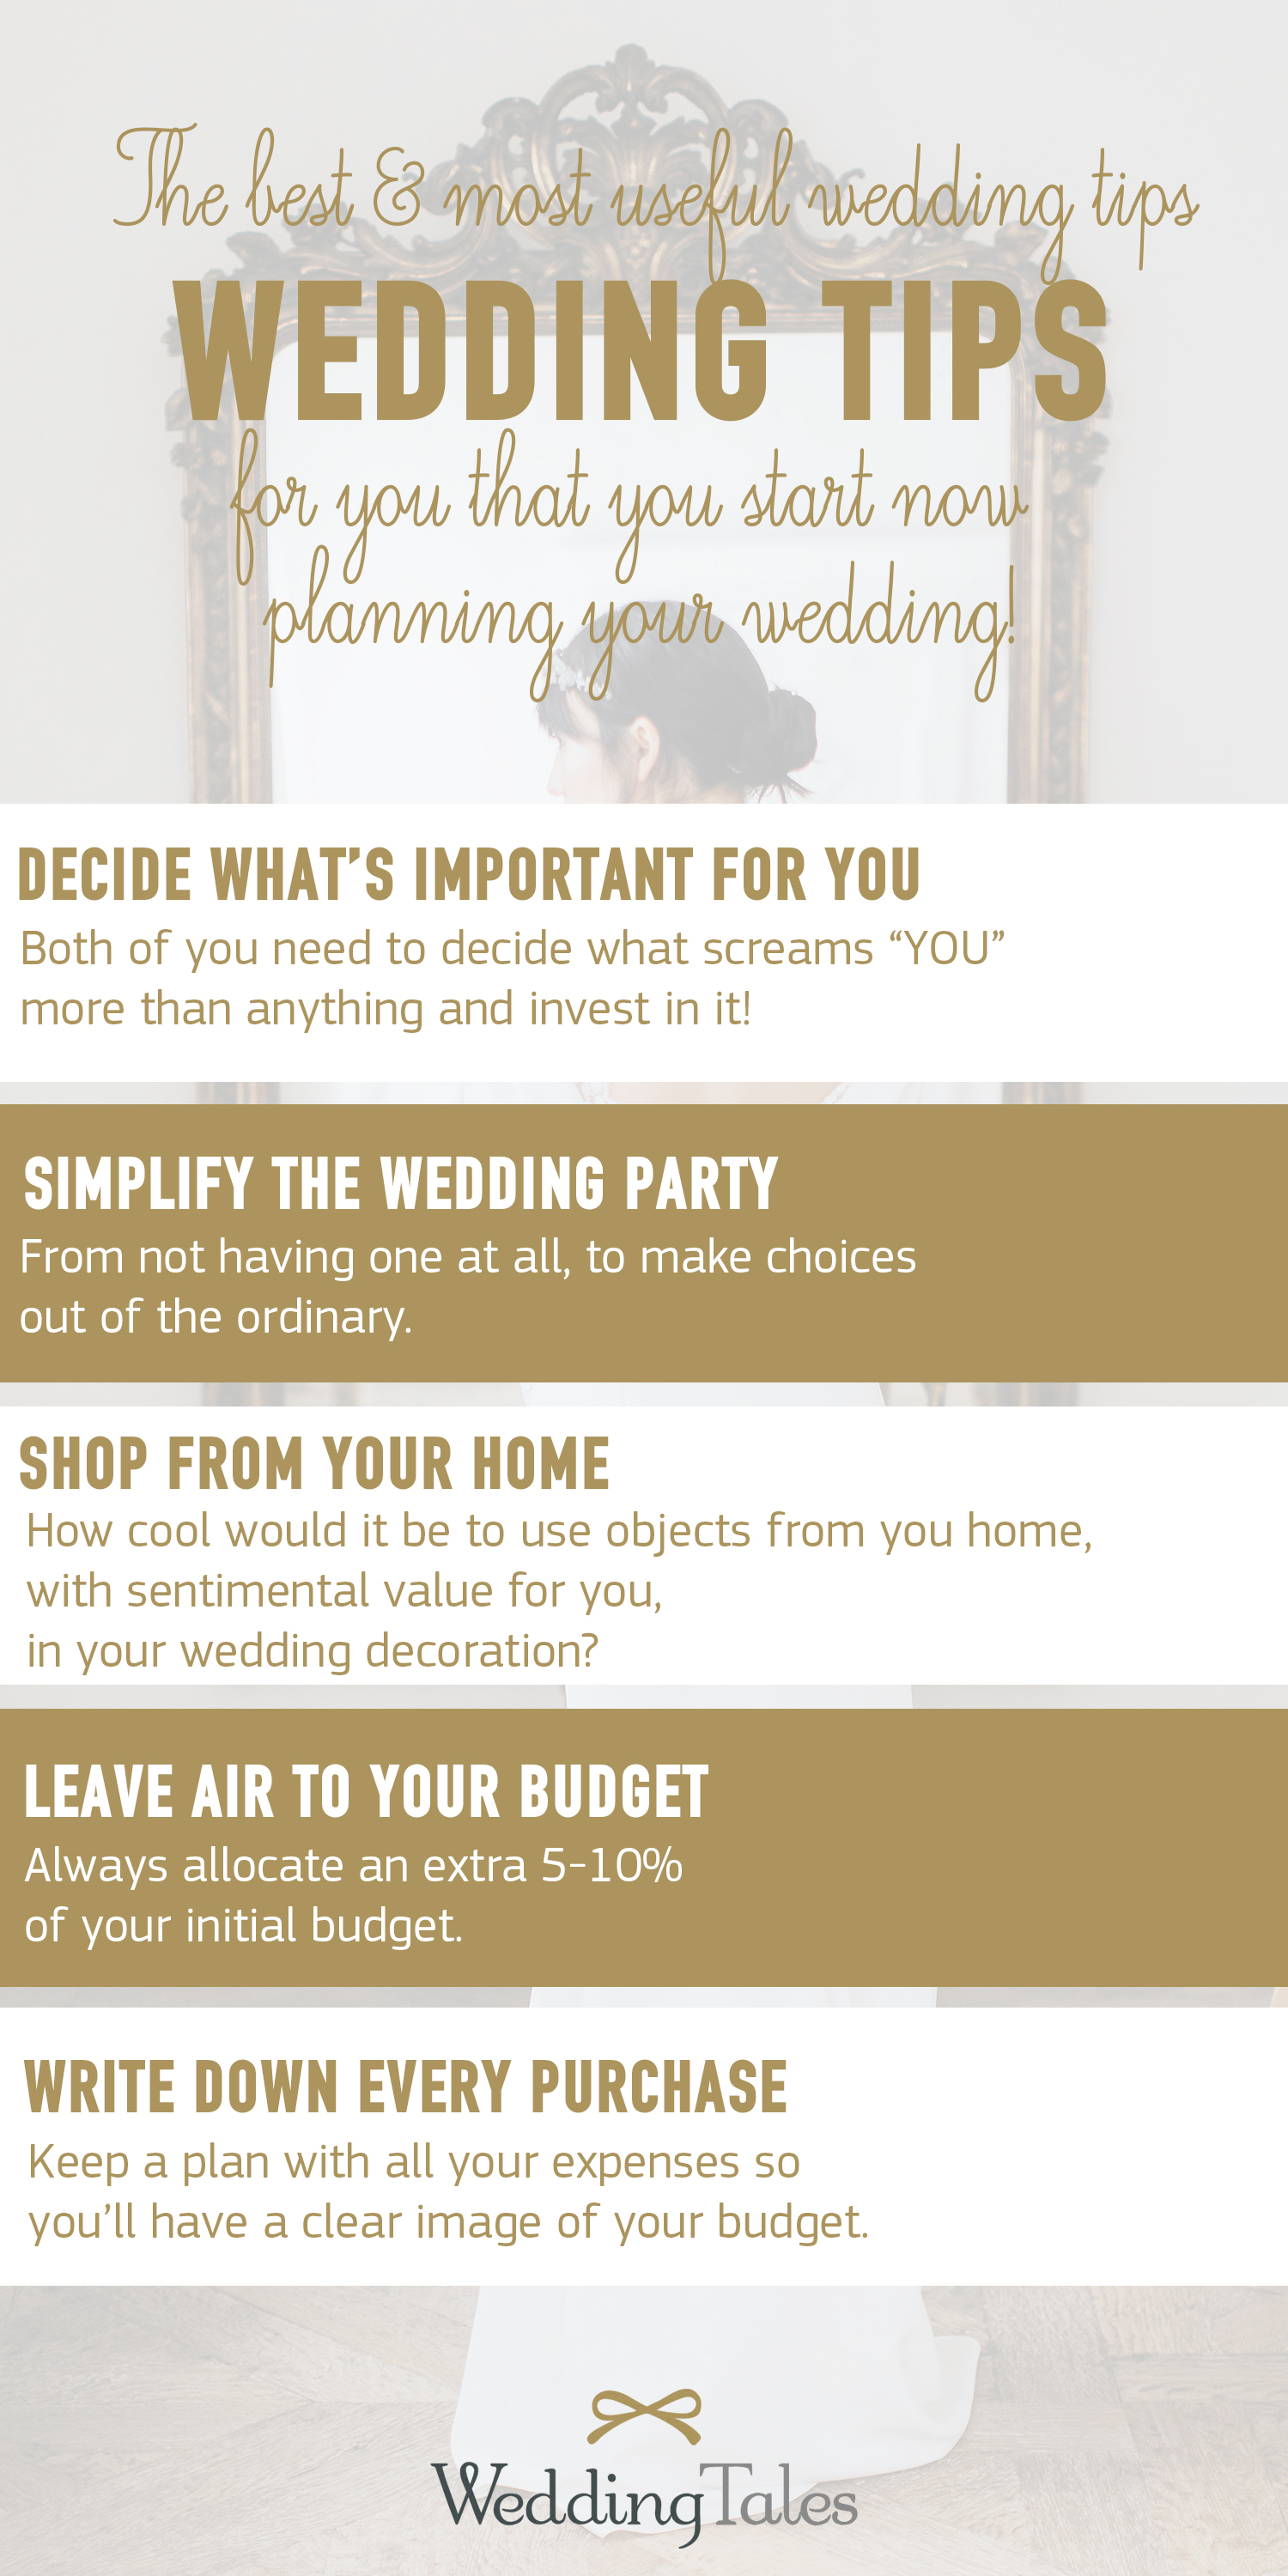 The best and most useful wedding tips